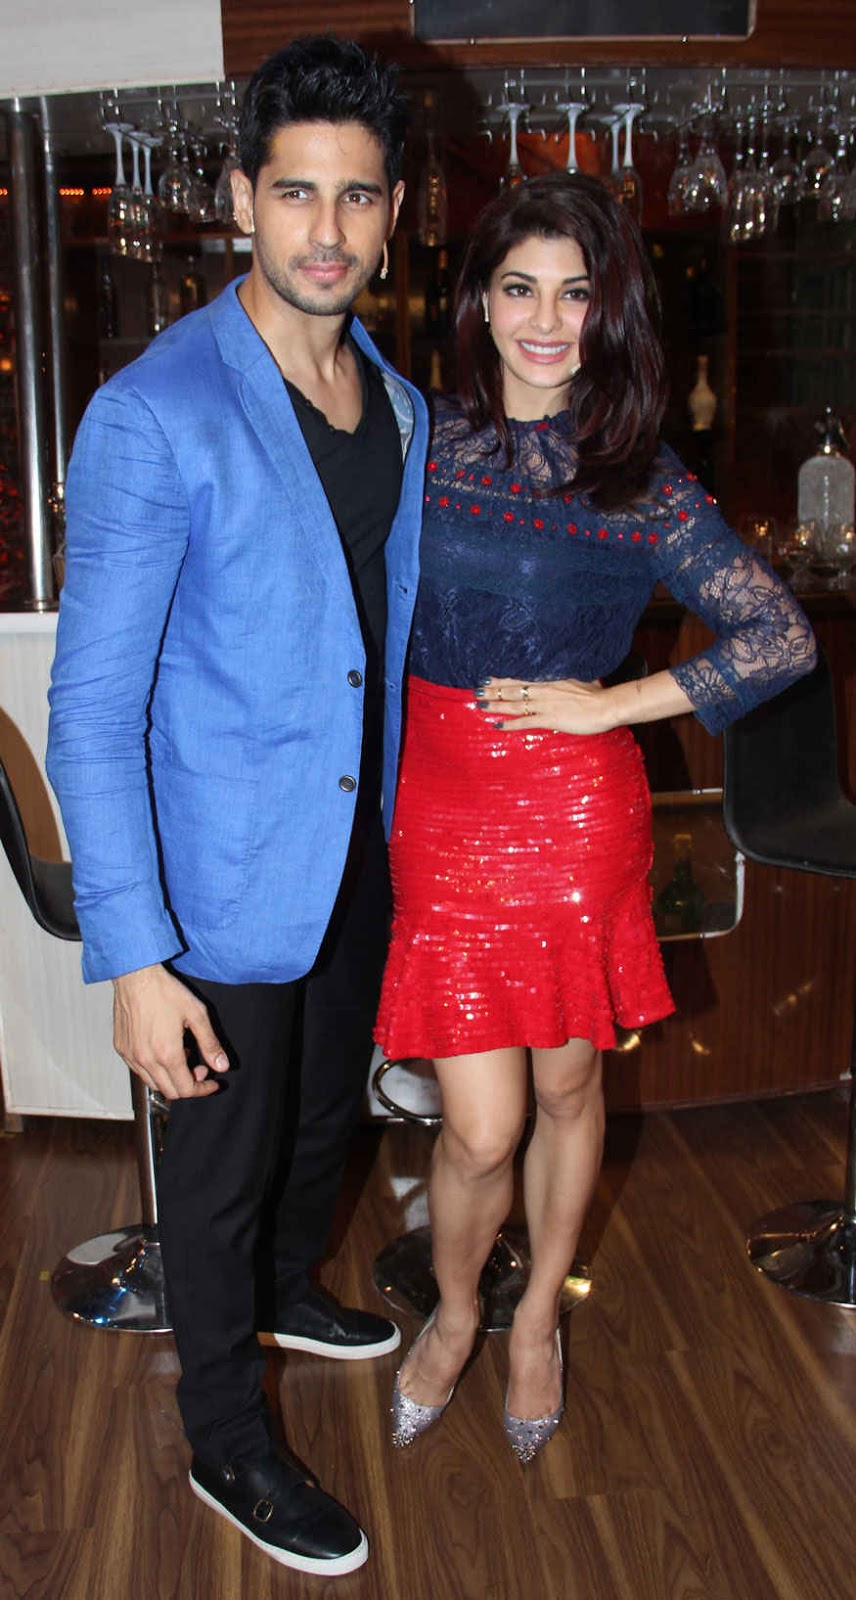 Sidharth Malhotra and Jacqueline Fernandez on The Sets of 'The Drama Company'